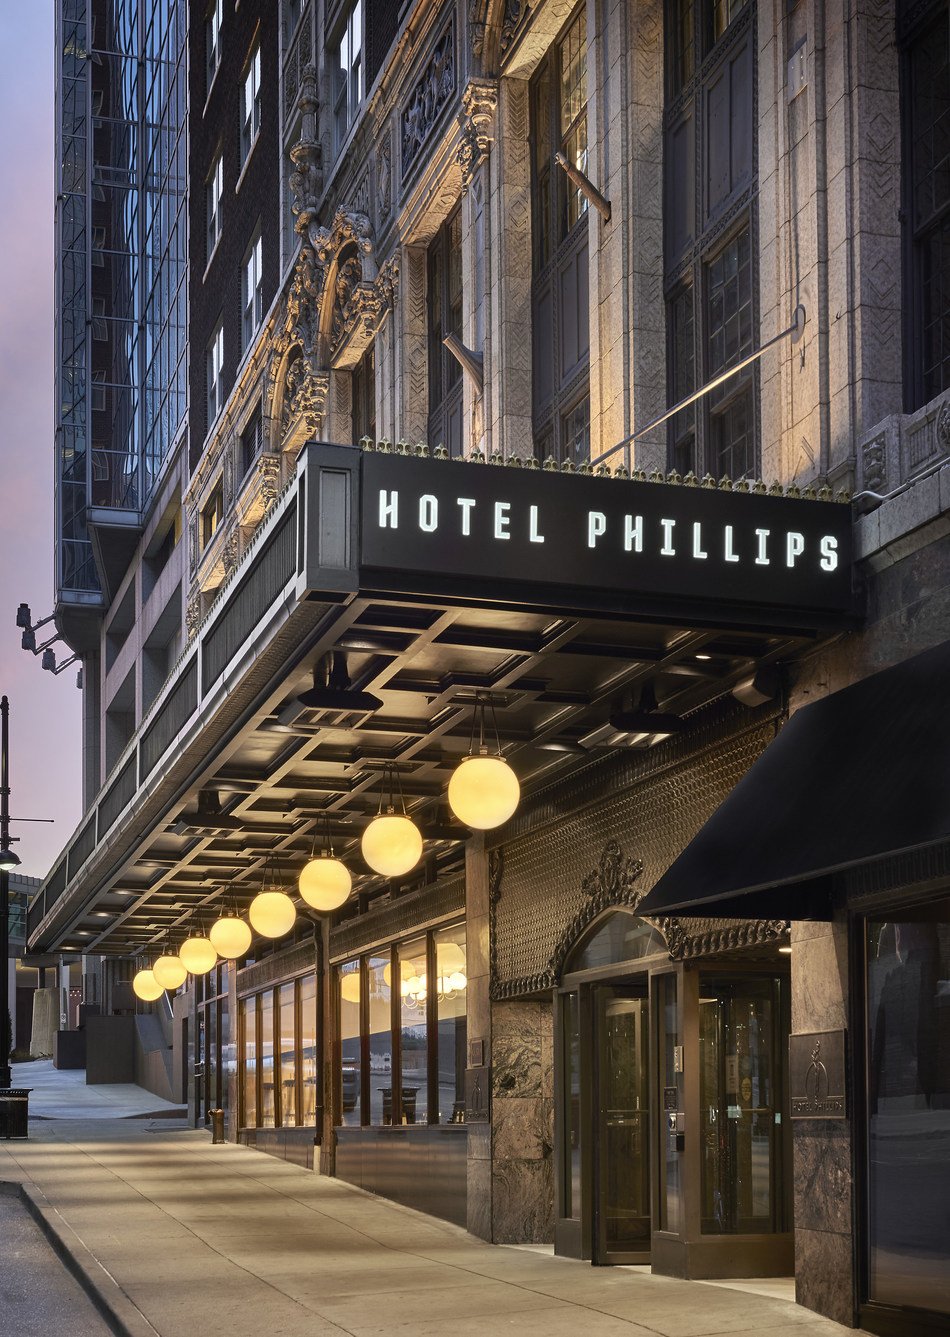 The historic Hotel Phillips--located in the heart of downtown Kansas City--selects Velociti to bring the restored treasure into the 21st century after its 1931 opening.